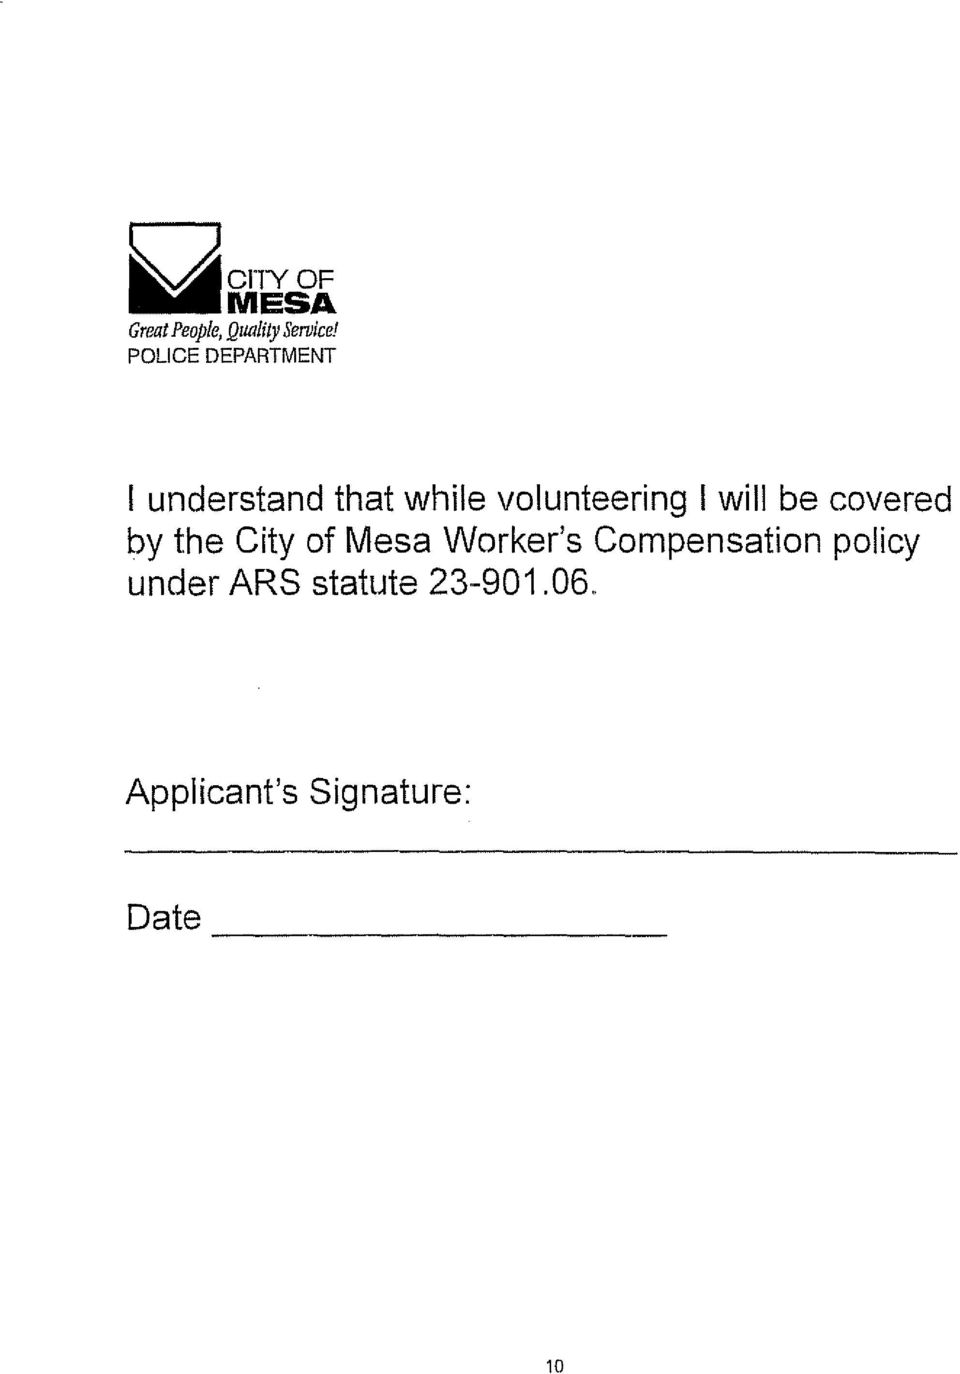 will be covered by the City of Mesa Worker's Compensation